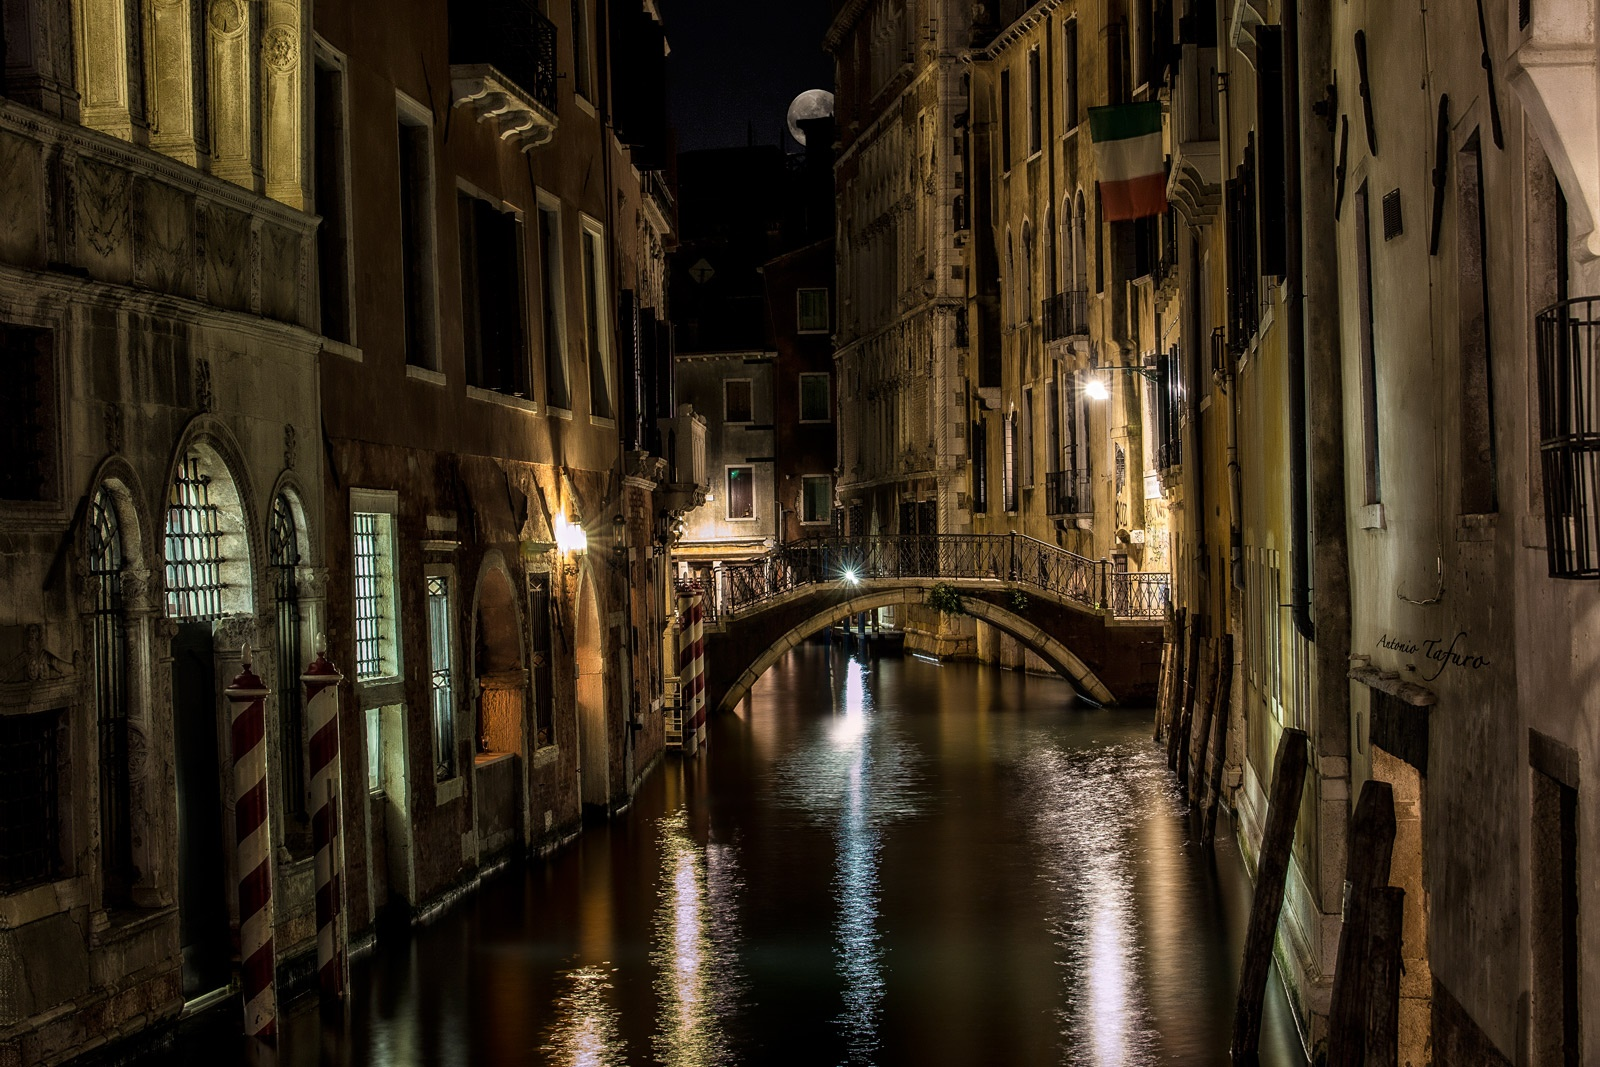 evening among the canals of Venice by Antonio Tafuro